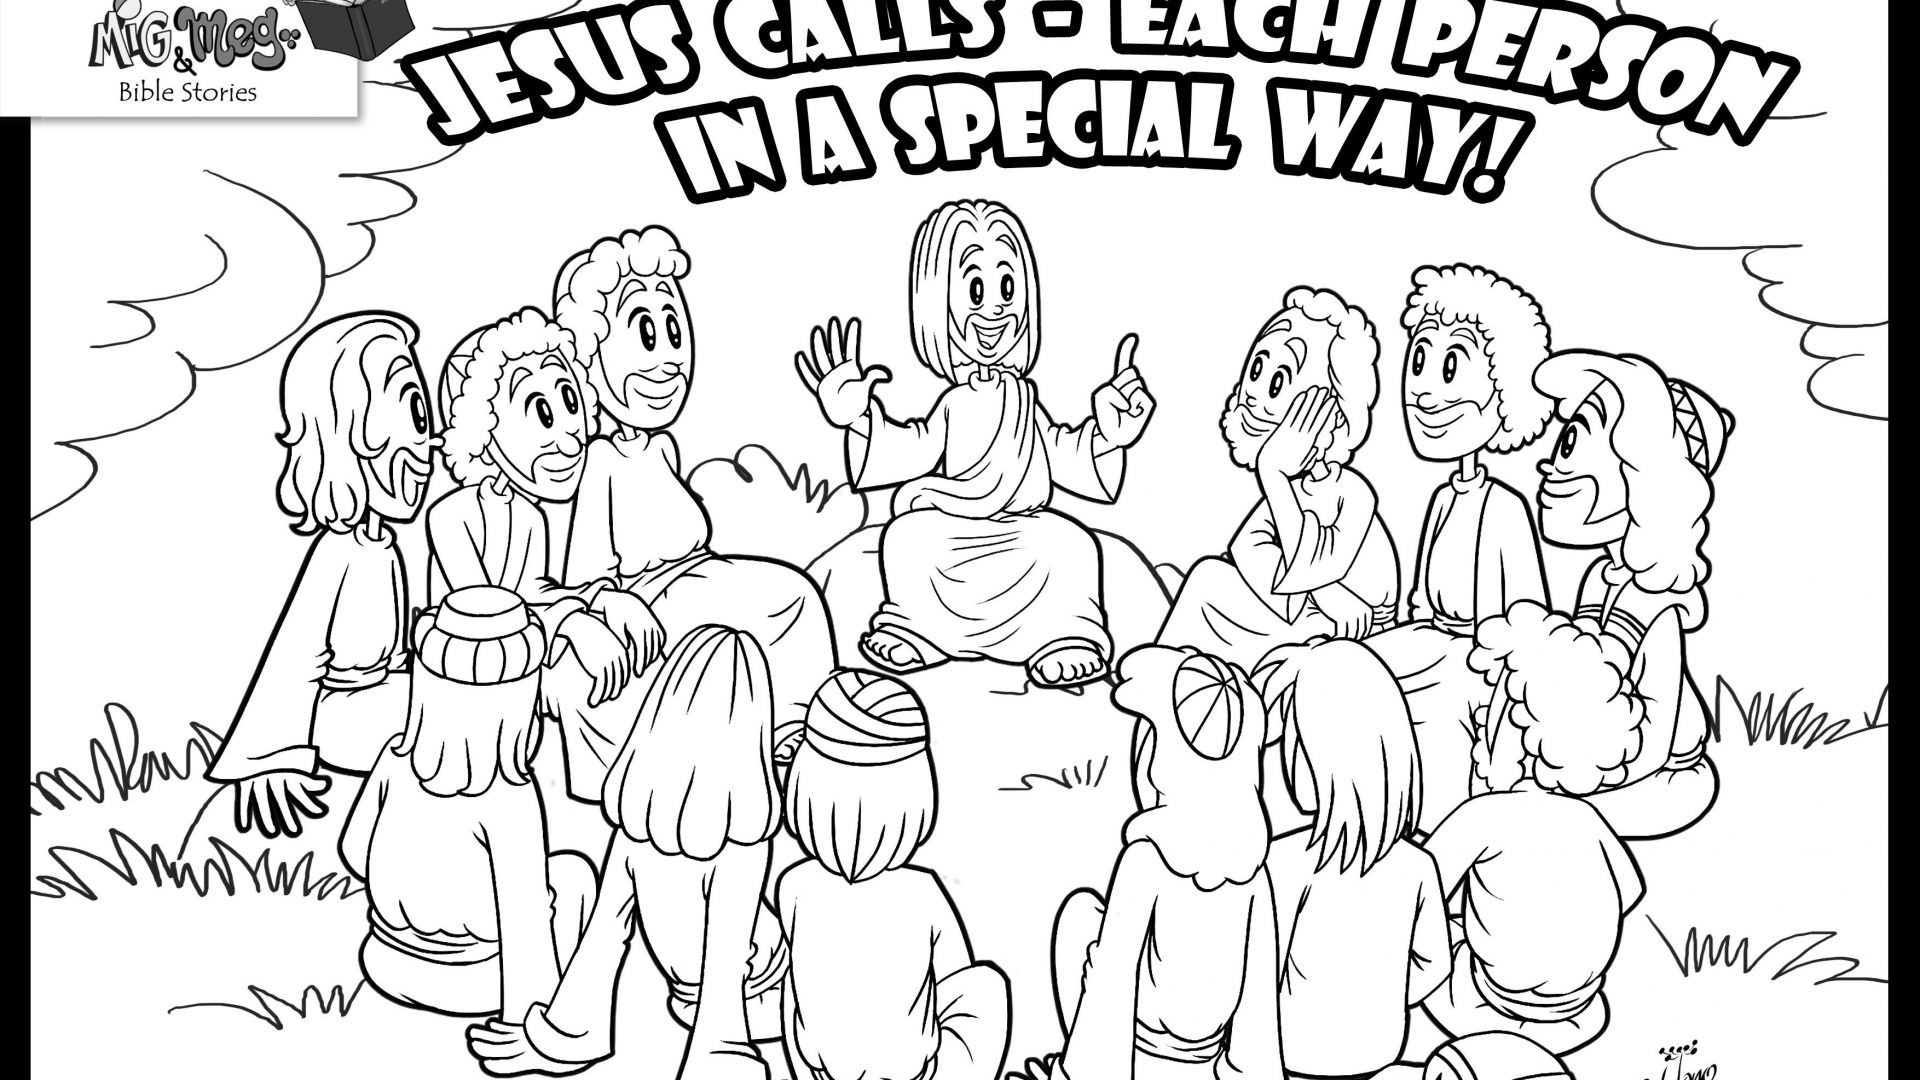 peter and andrew meet jesus coloring page 12 apostles of jesus christ coloring page coloring meet jesus and page andrew peter